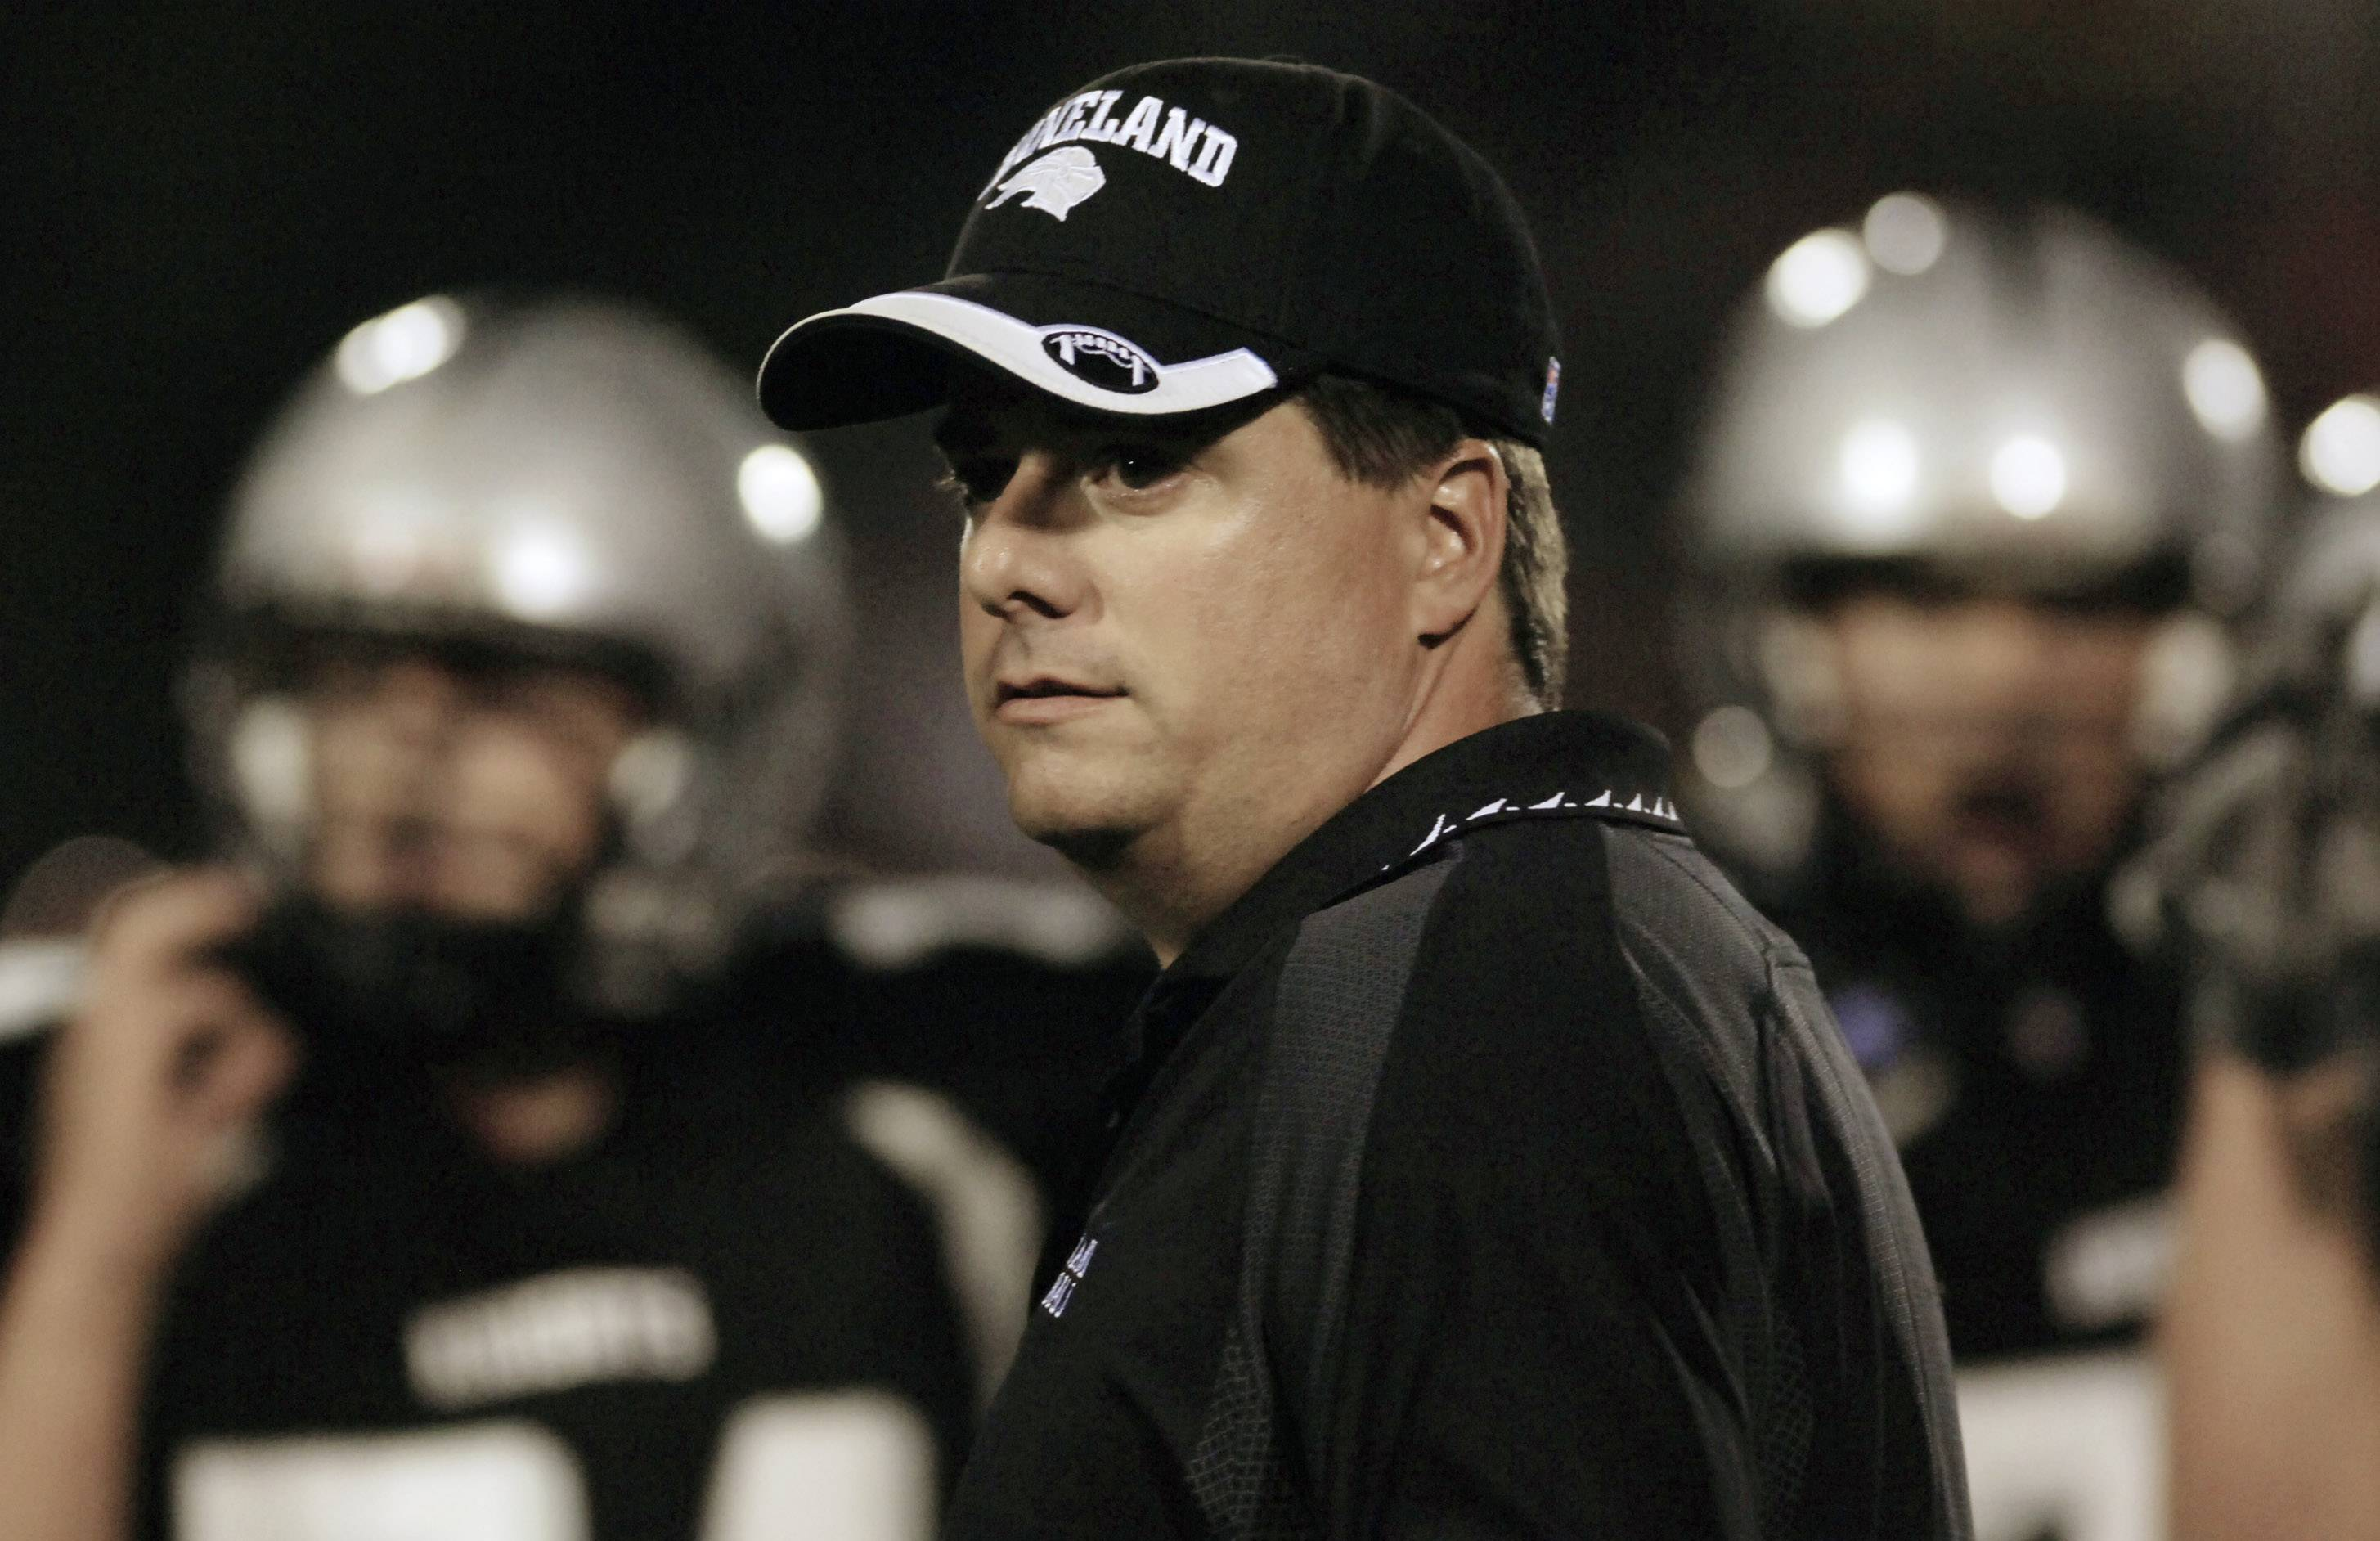 Tom Fedderly went 73-33 in his 10 years coaching Kaneland.